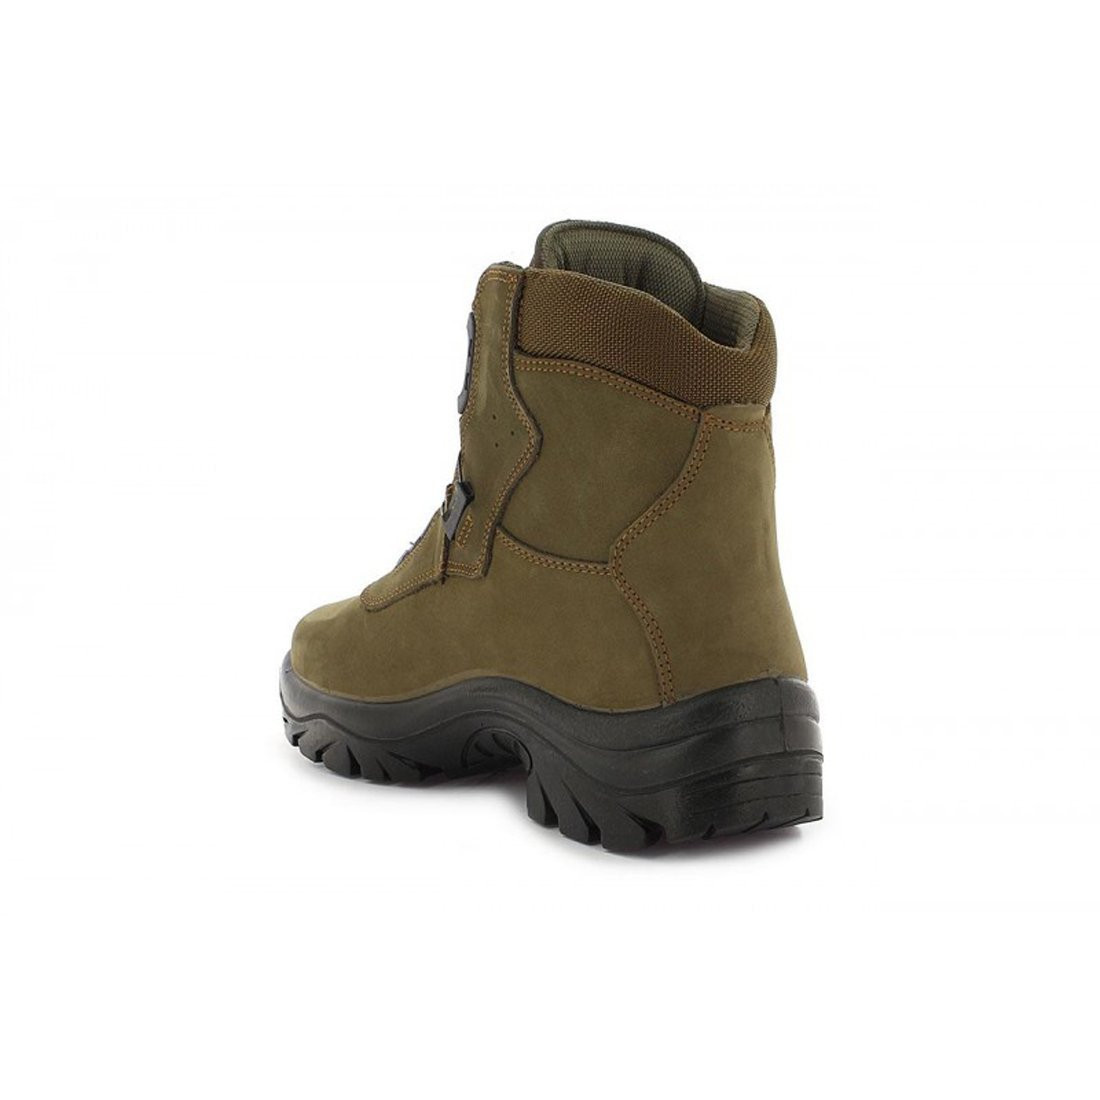 Chaussures Chaussures Labrador Boa GTX Chiruca - 3